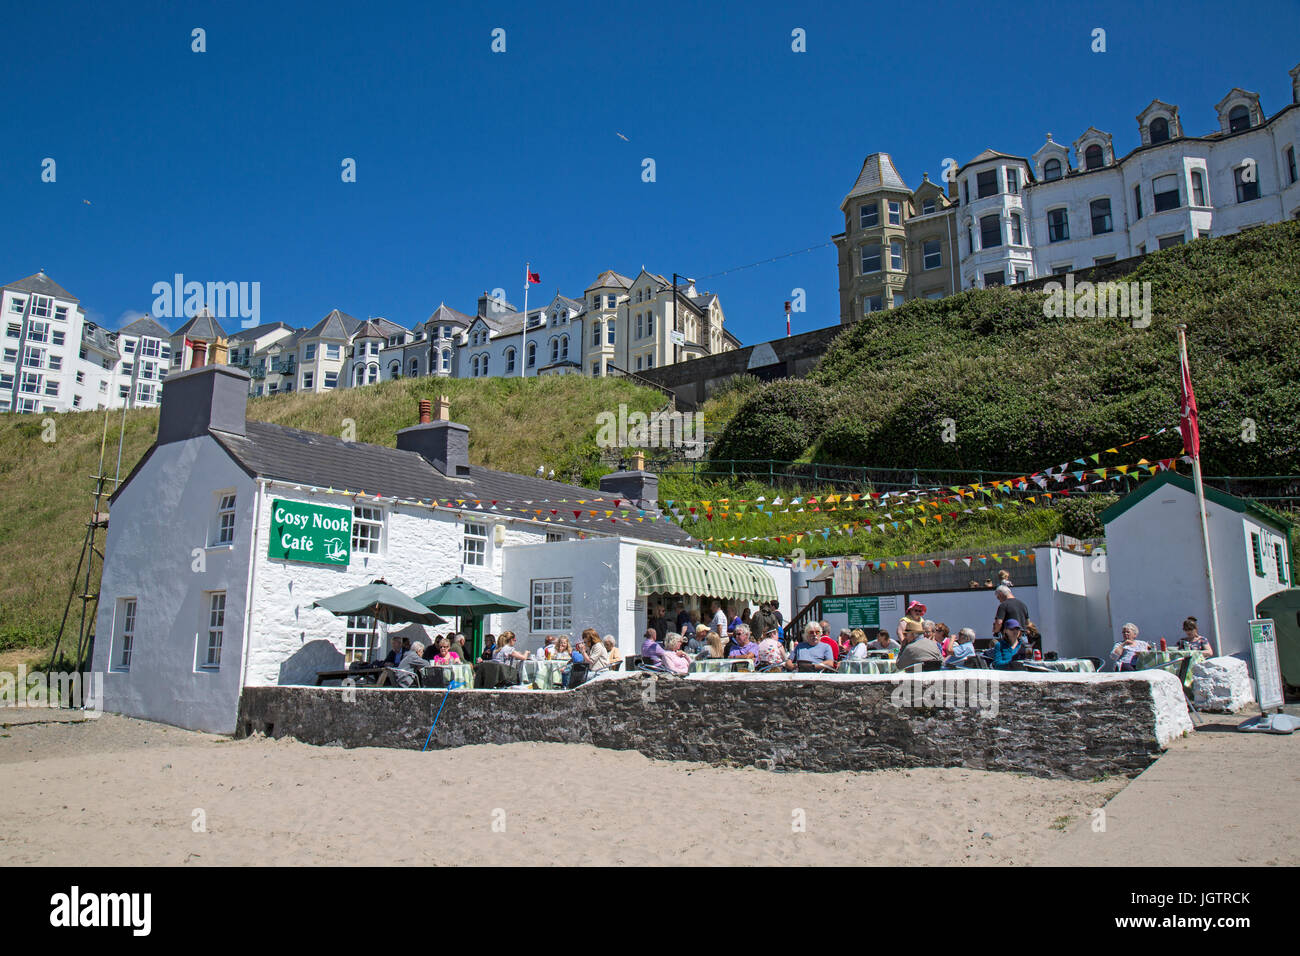 The Cosy Nook cafe in Port Erin on The Isle of man. - Stock Image